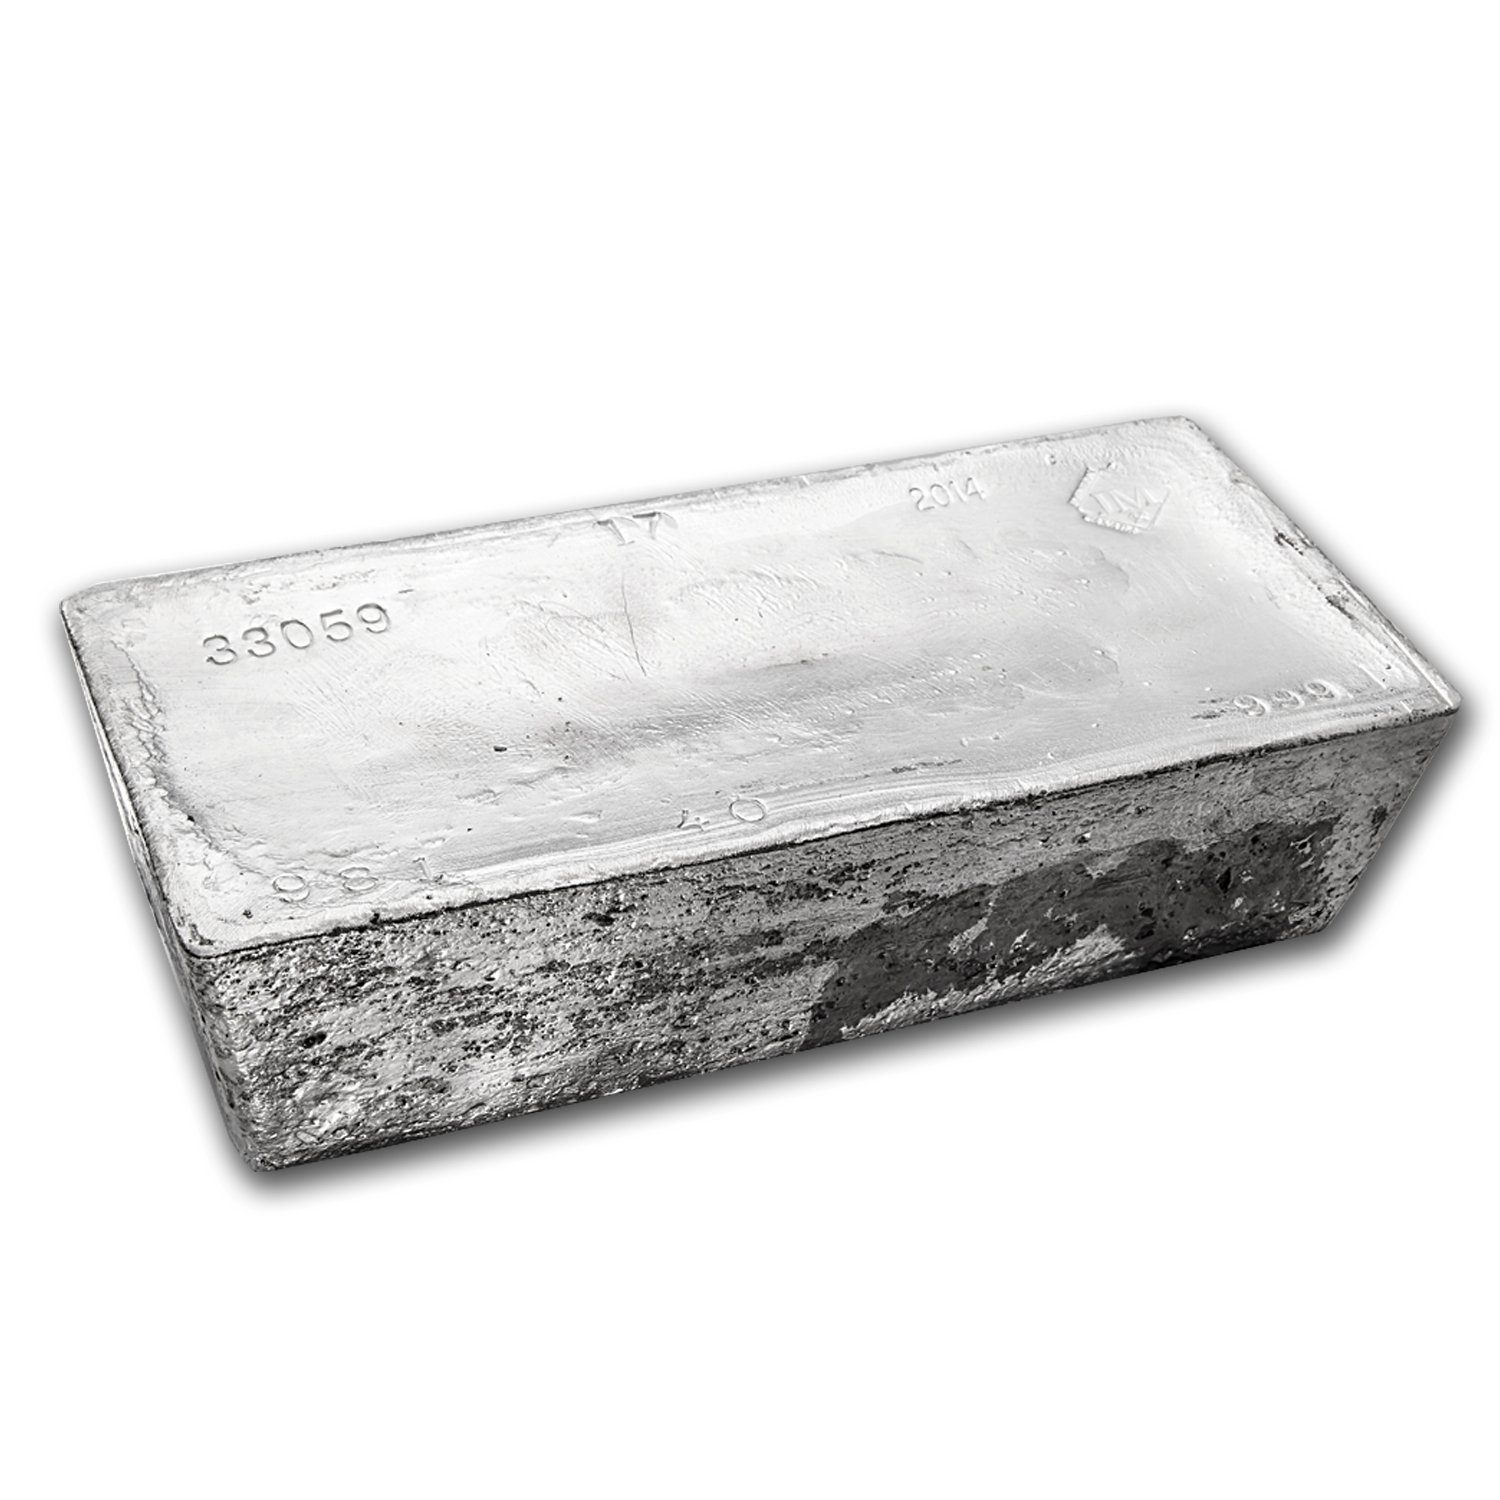 975.10 oz Silver Bar - Johnson Matthey